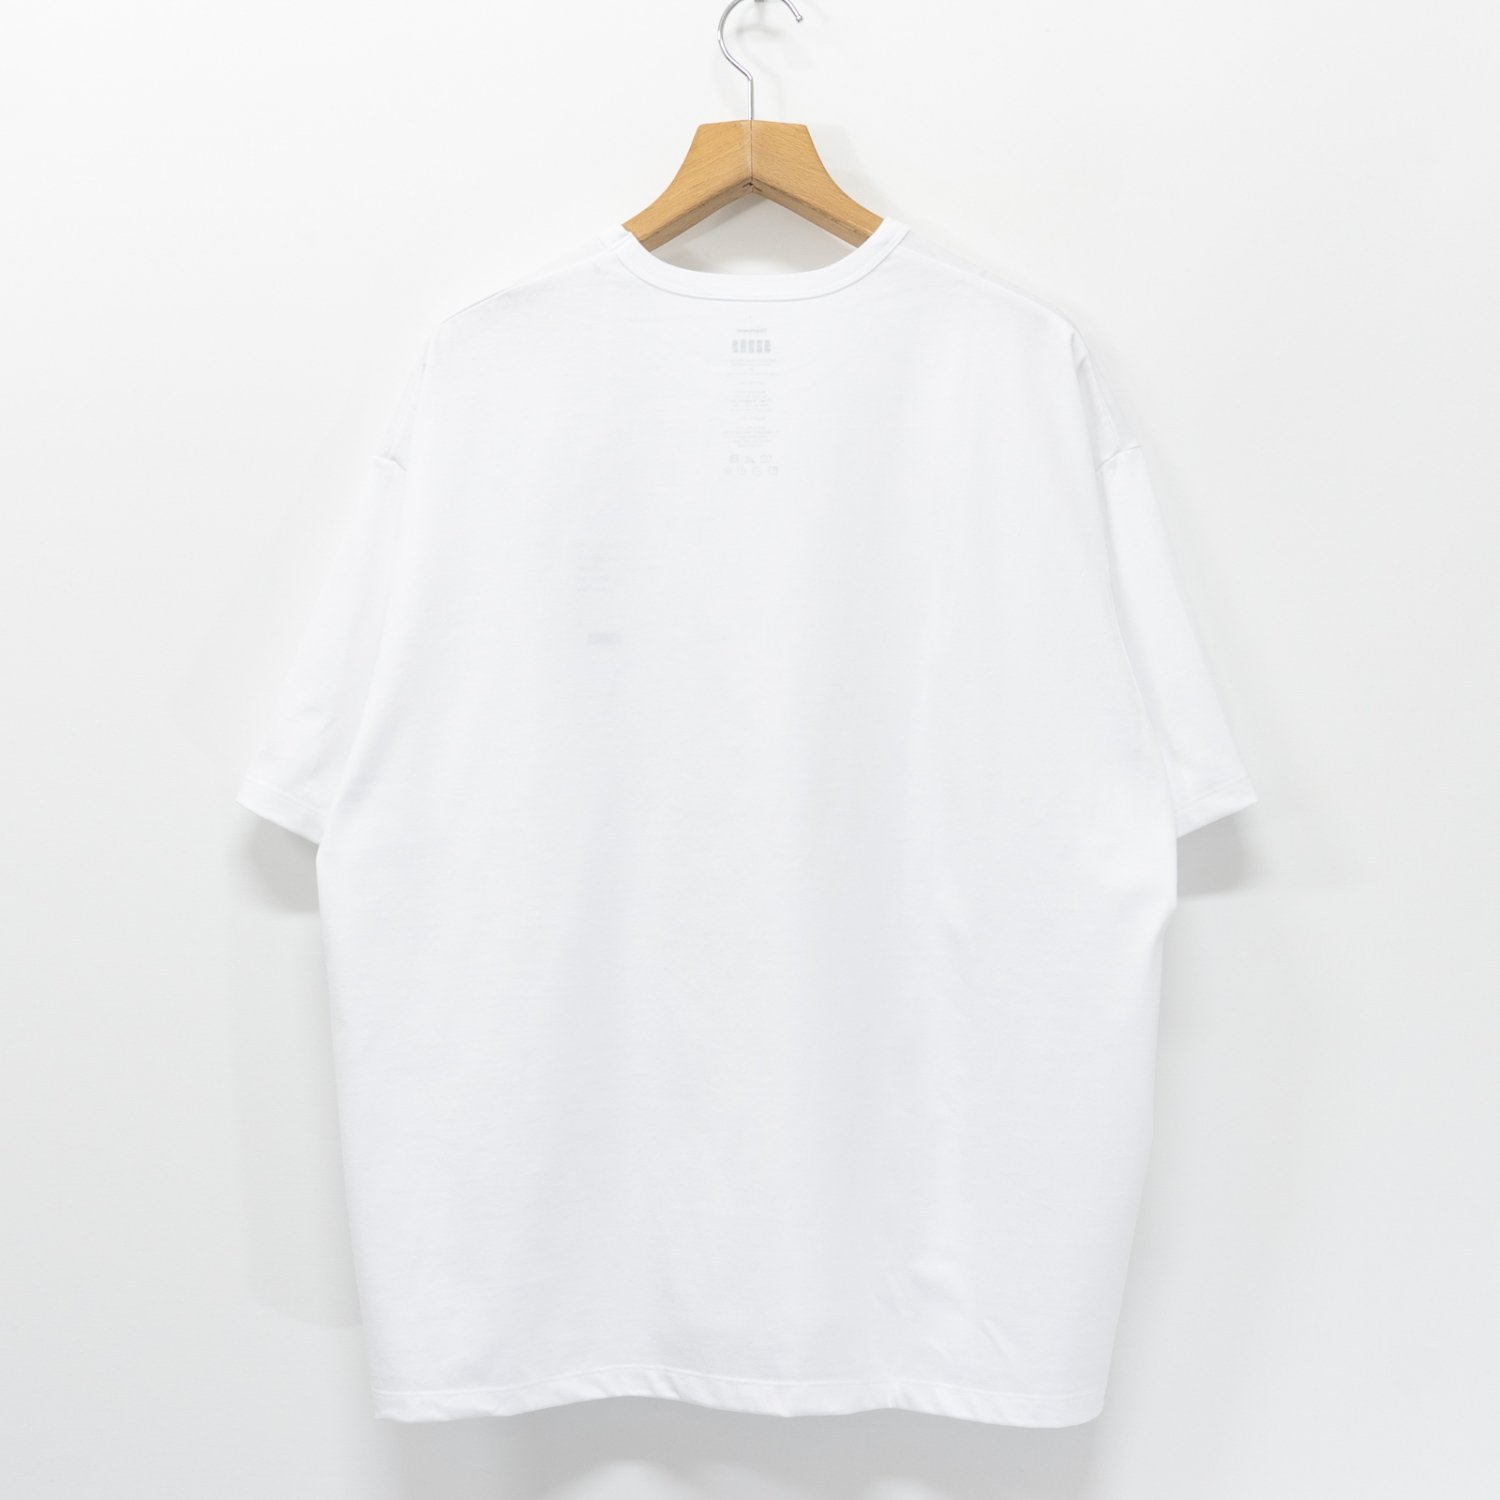 Graphpaper * Jersey S/S Tee * White